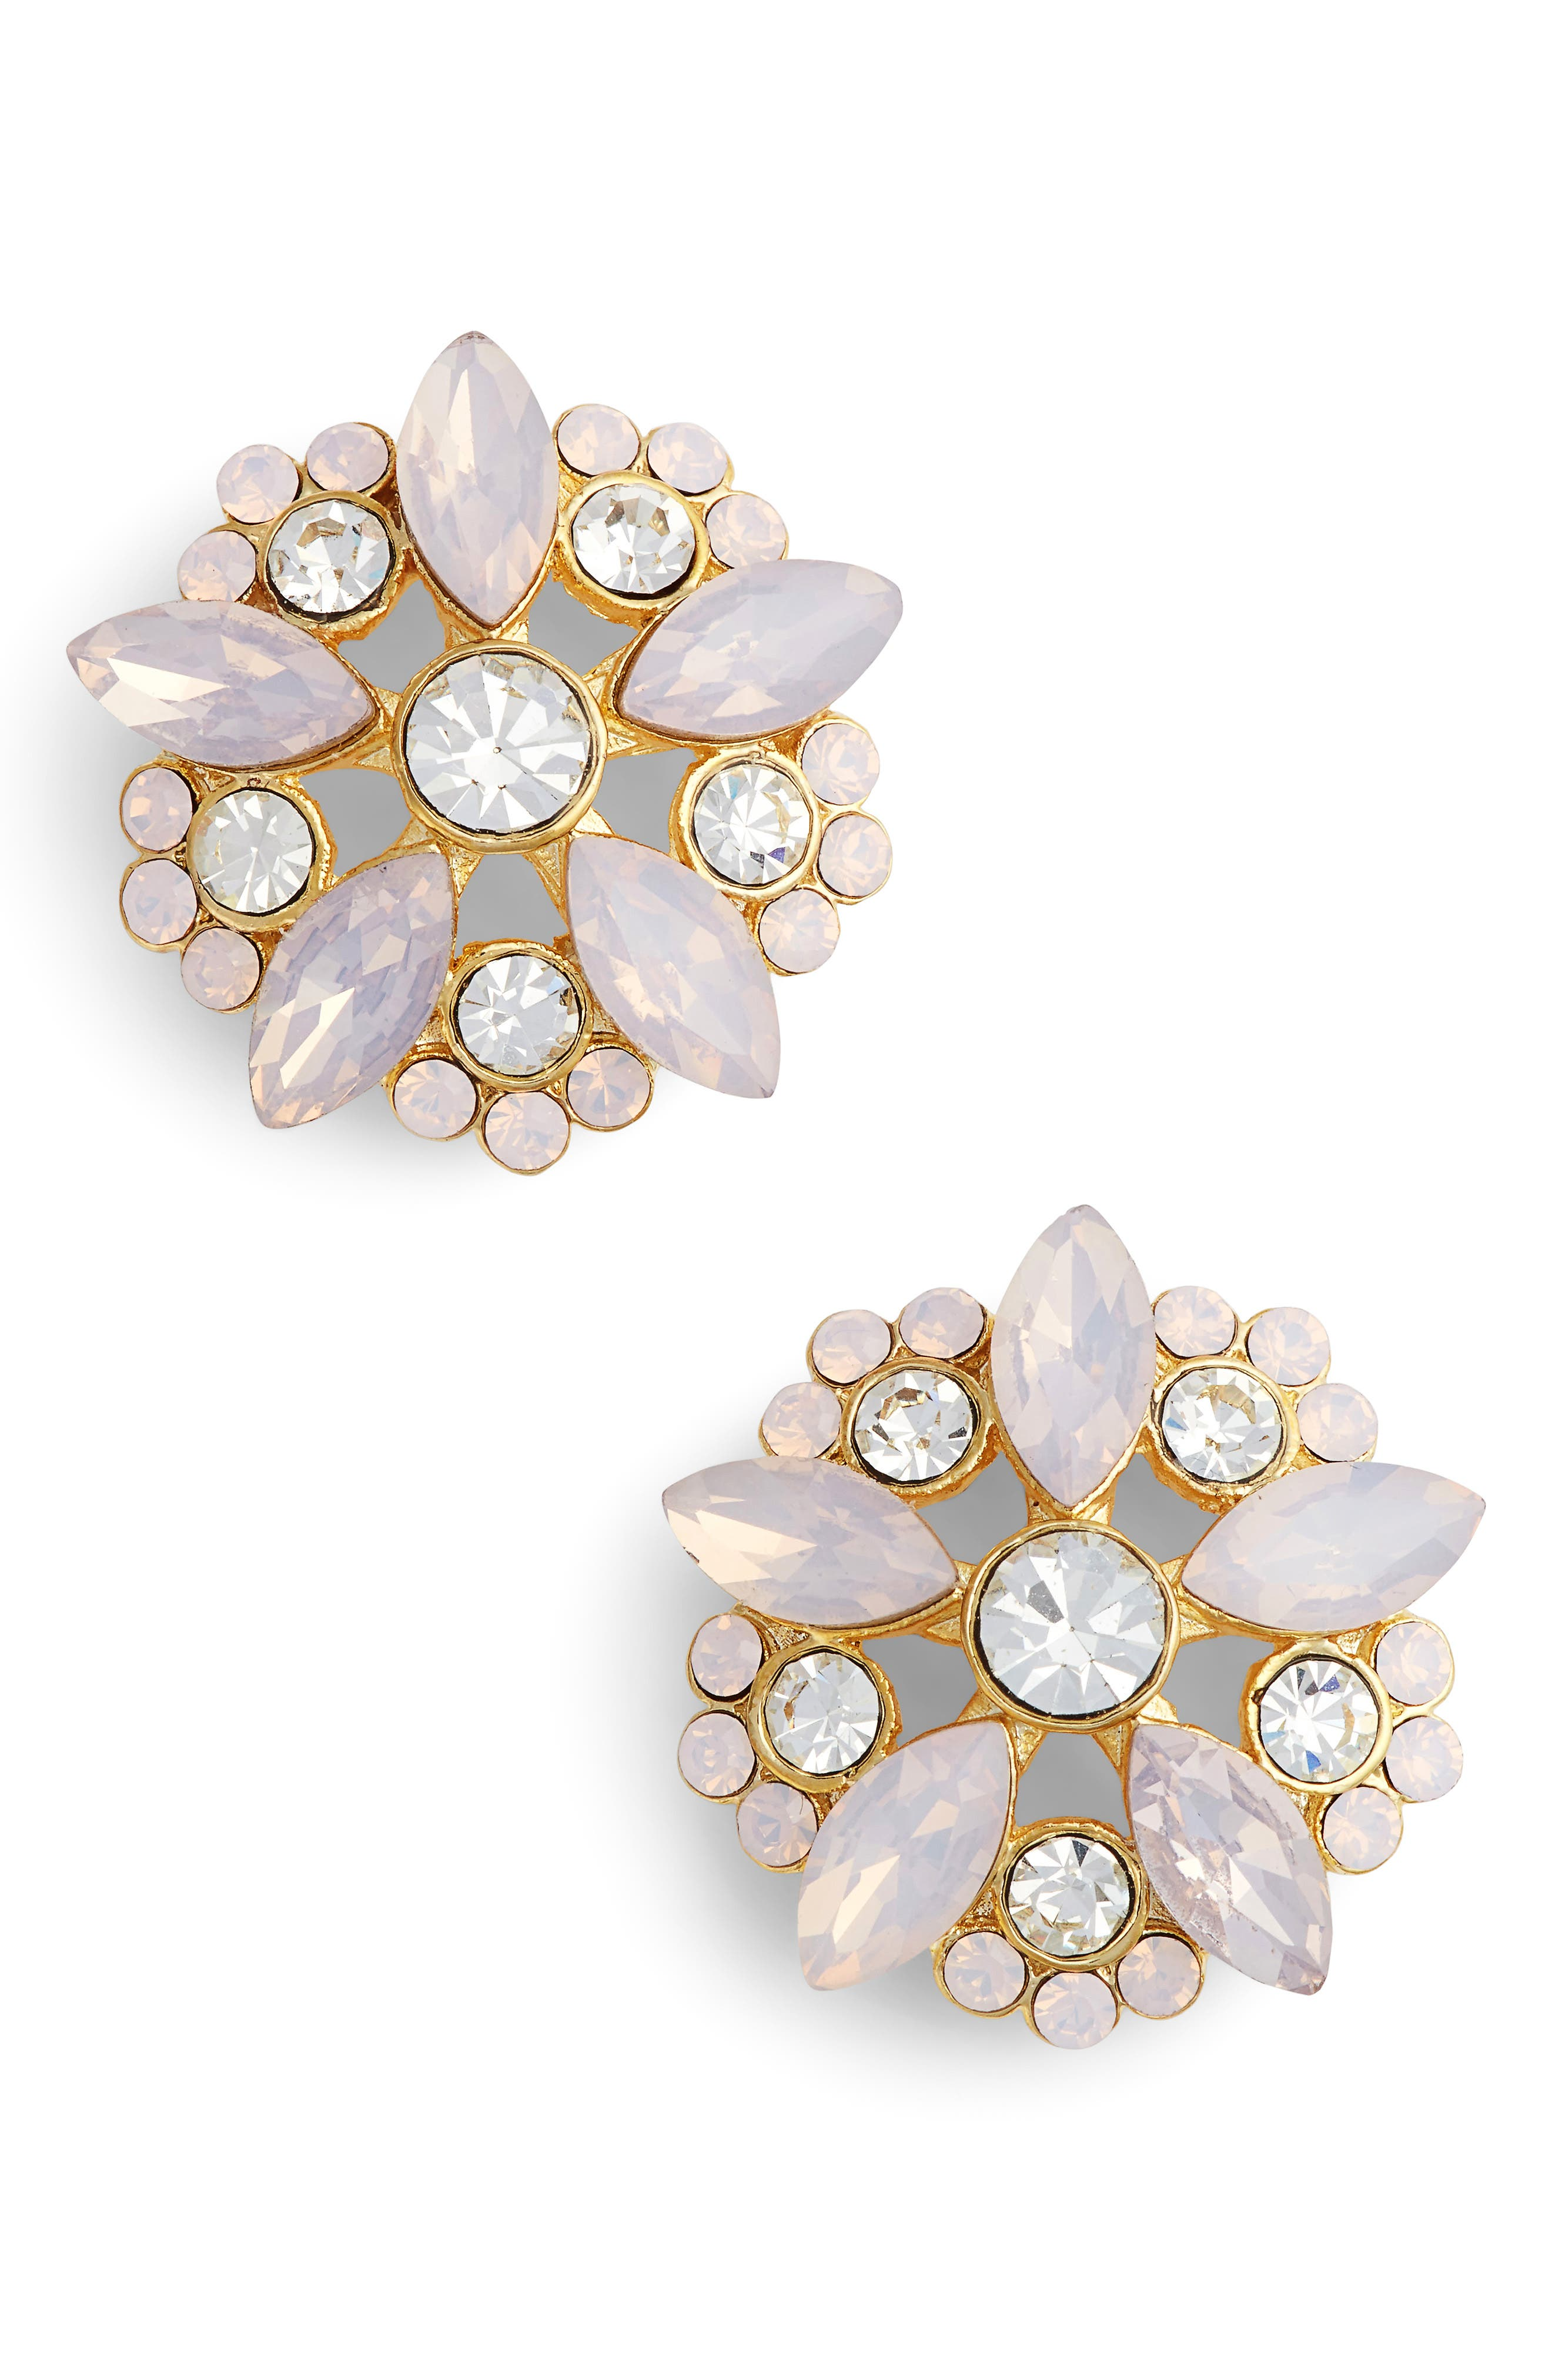 Floral Stud Earrings,                         Main,                         color, GOLD/ PINK OPAL/ WHITE CRYSTAL